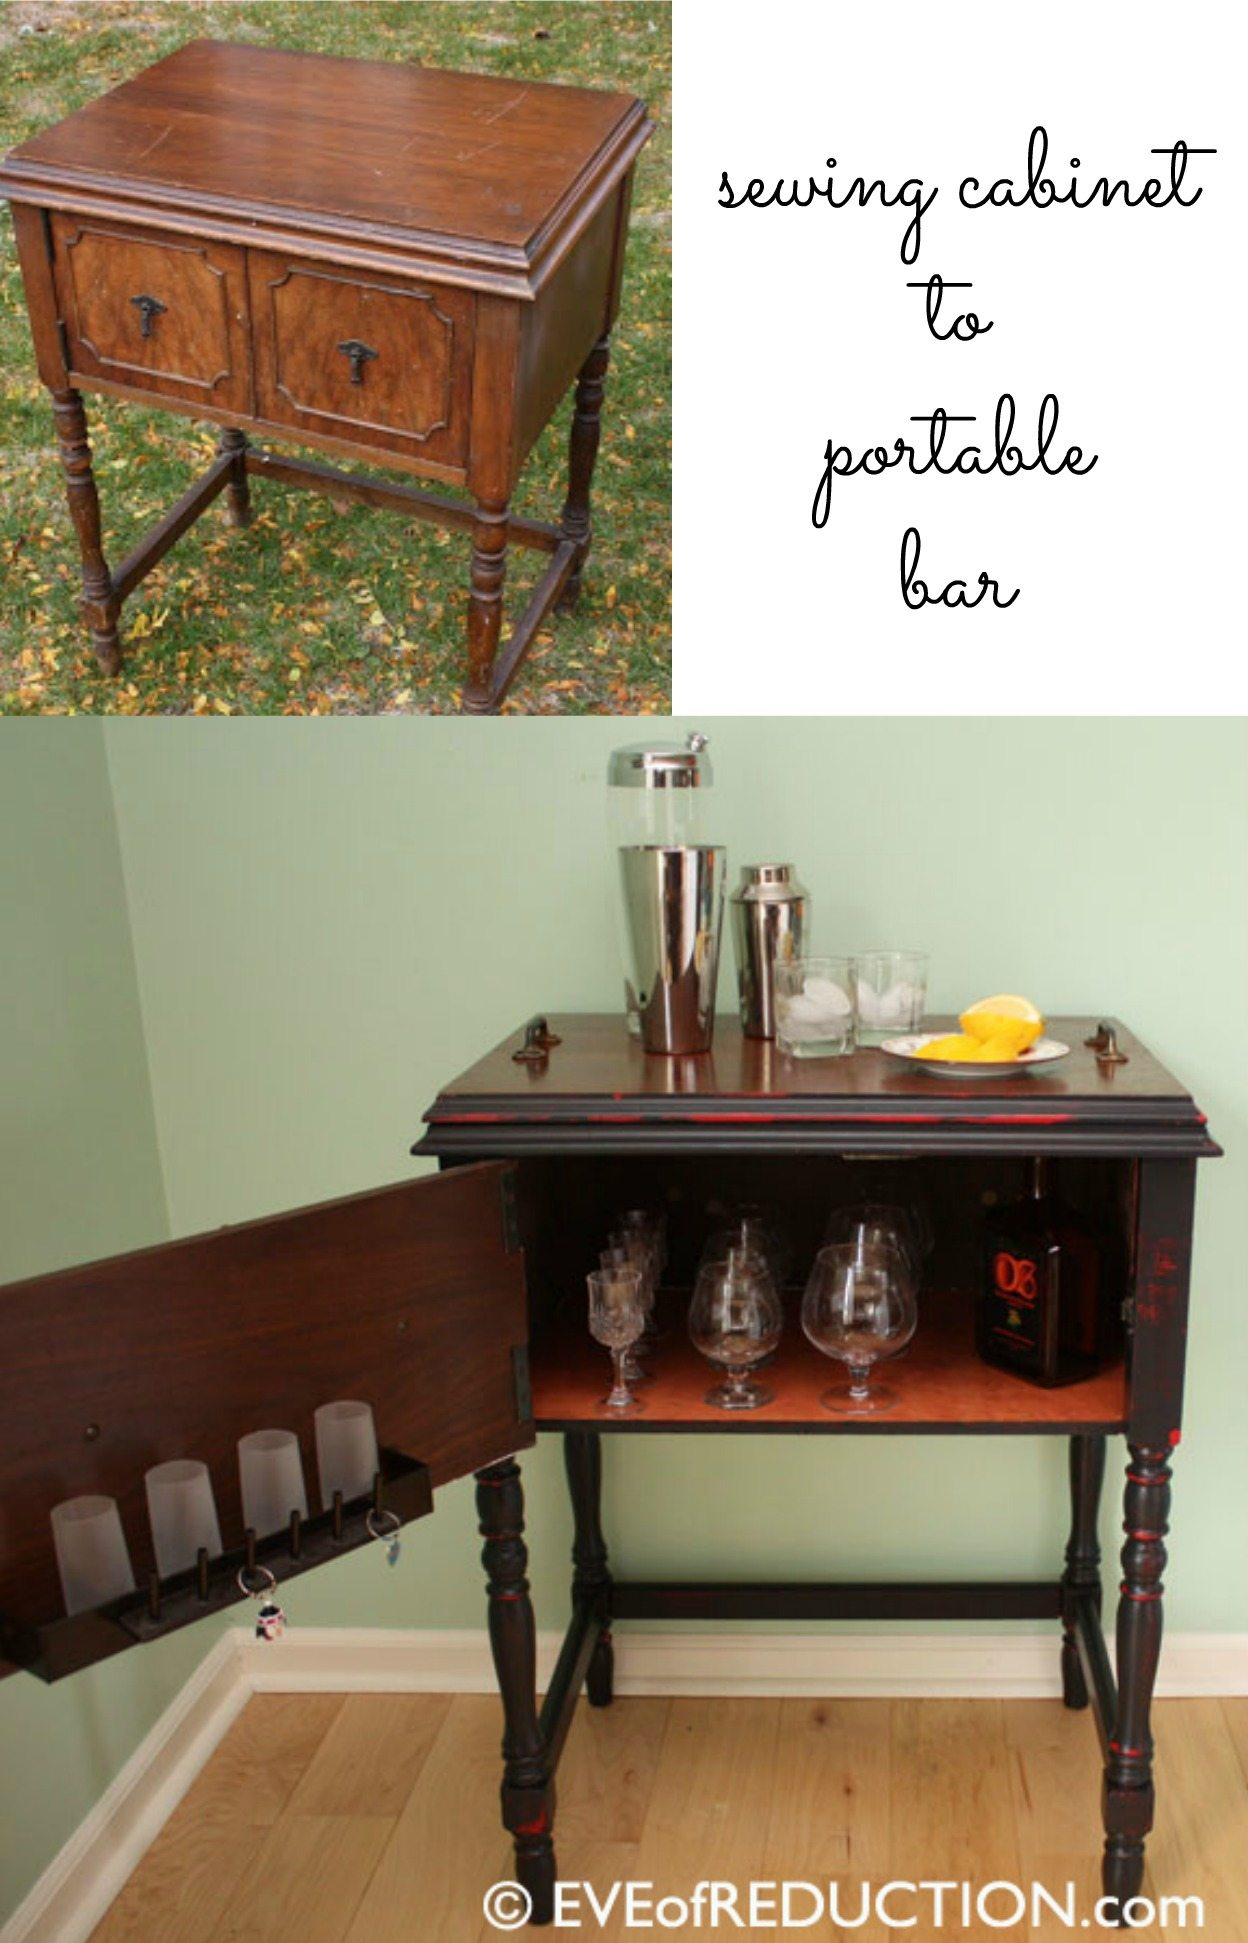 Sewing Cabinet Bar My Repurposed Life